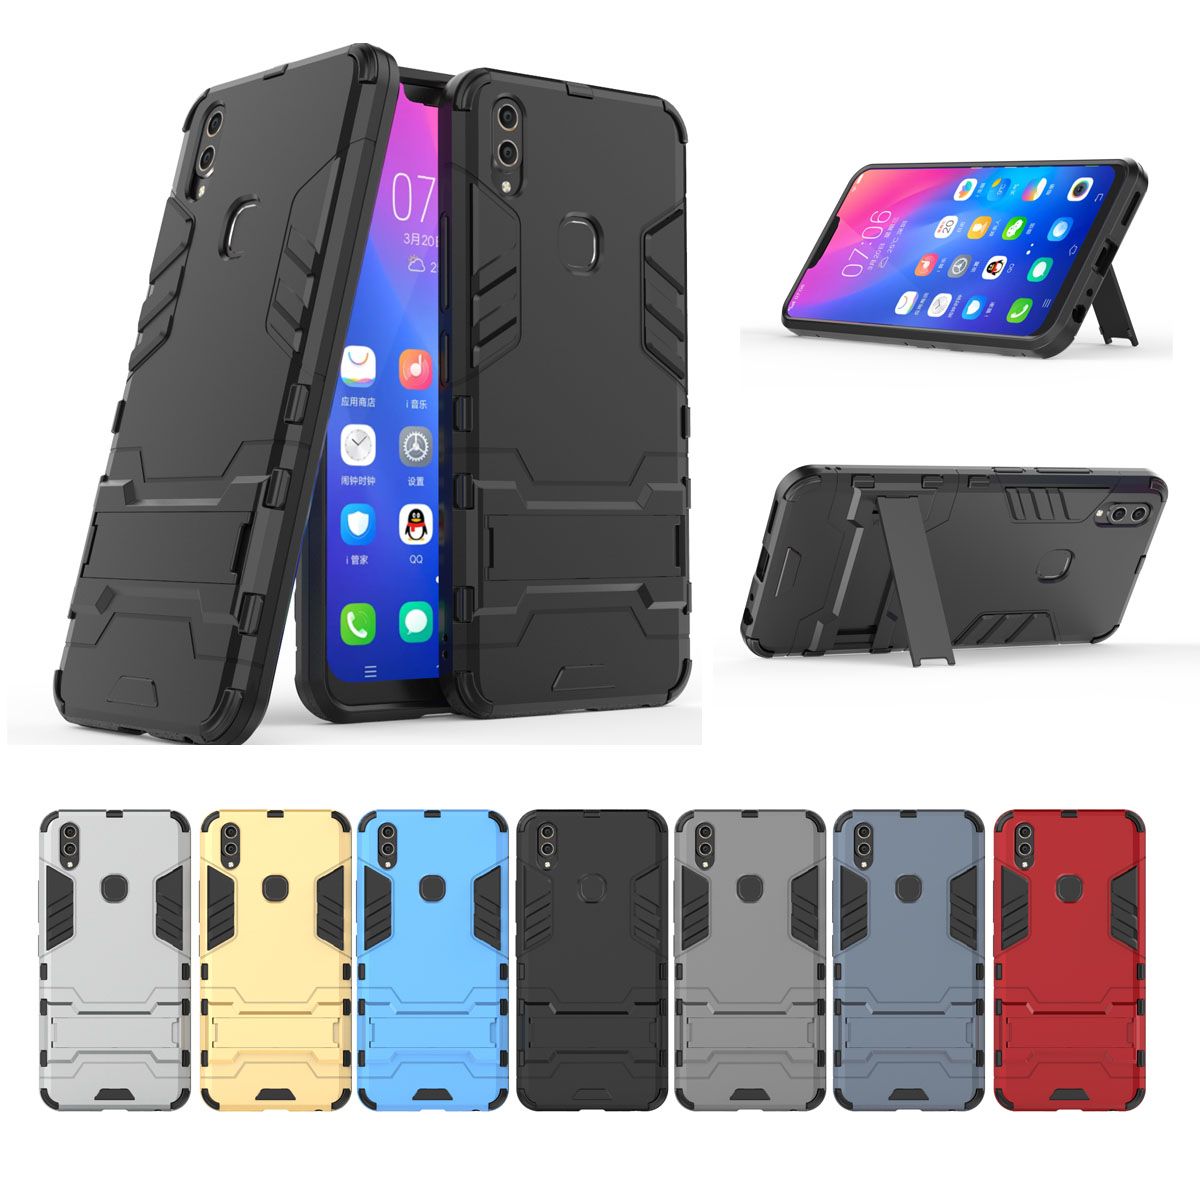 Cool Robot Case BBK Vivo V9 Cover Shockproof Strong Armor Phone Cover For Vivo V9 Youth Case PC Silicone Case For Vivo Y85 Shell